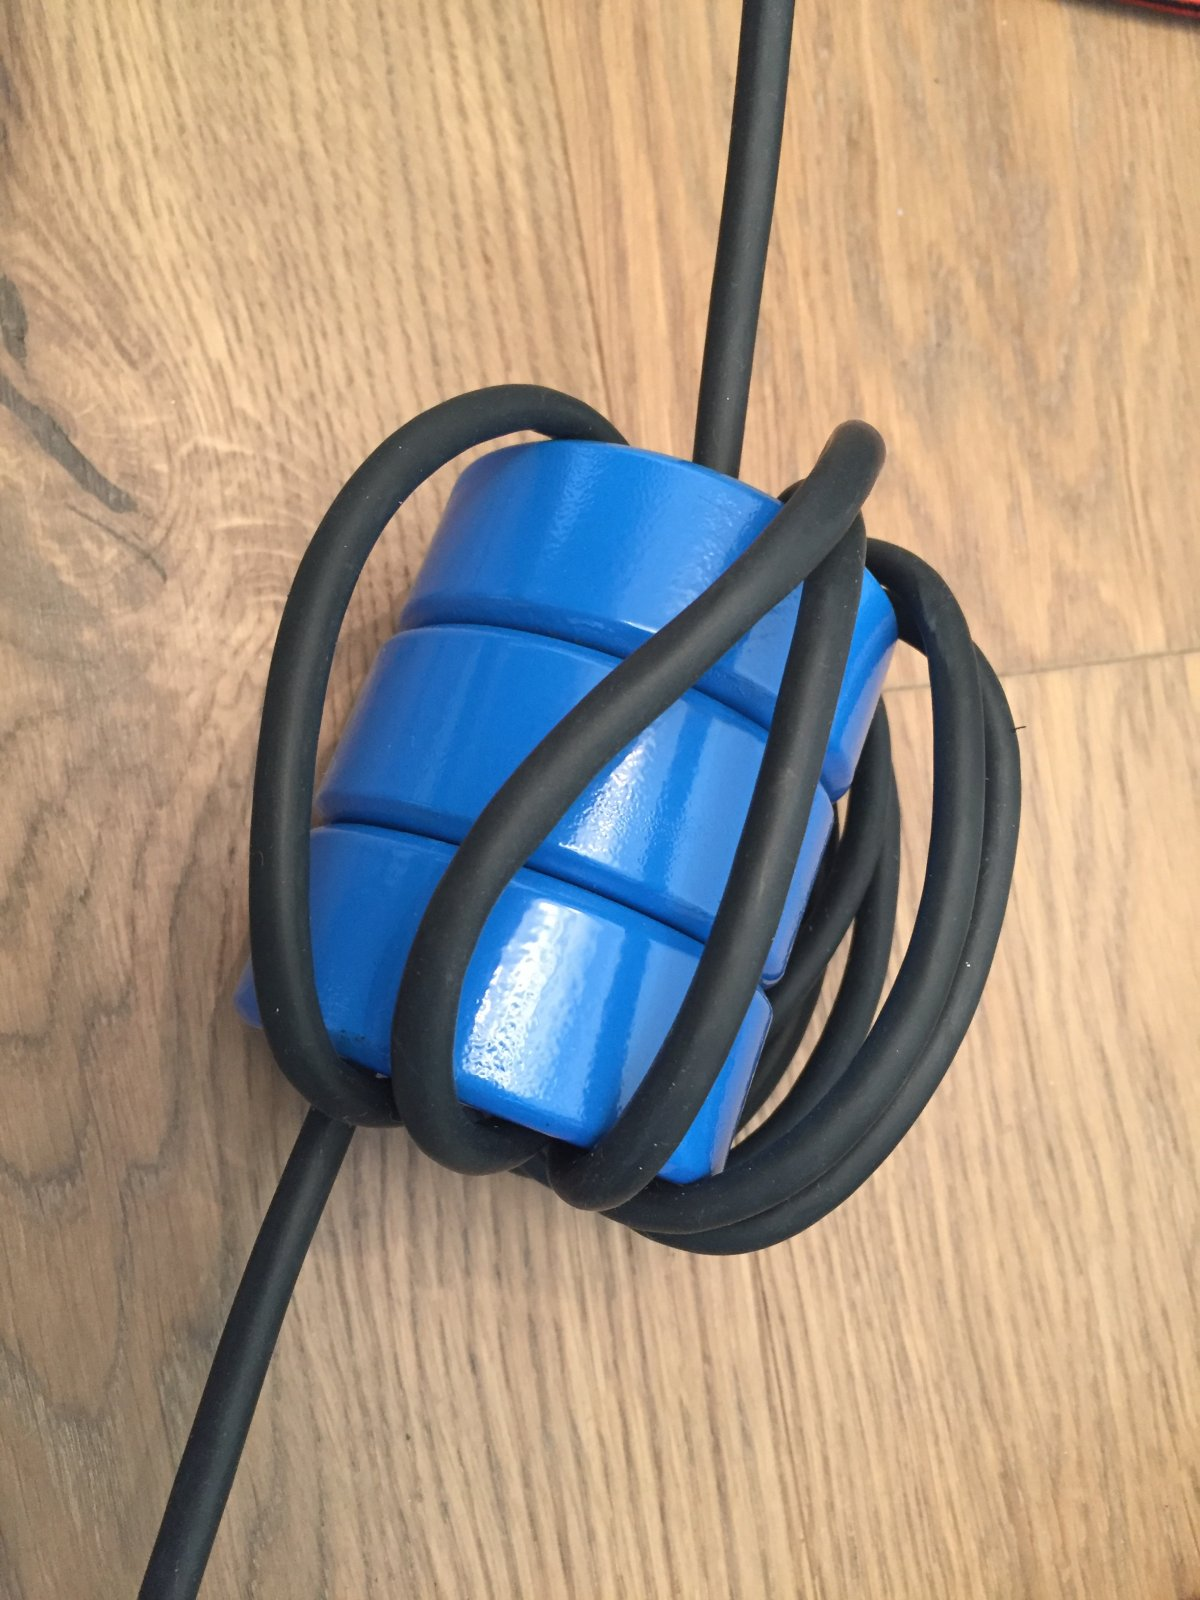 VIVE, solution to RF interference problem